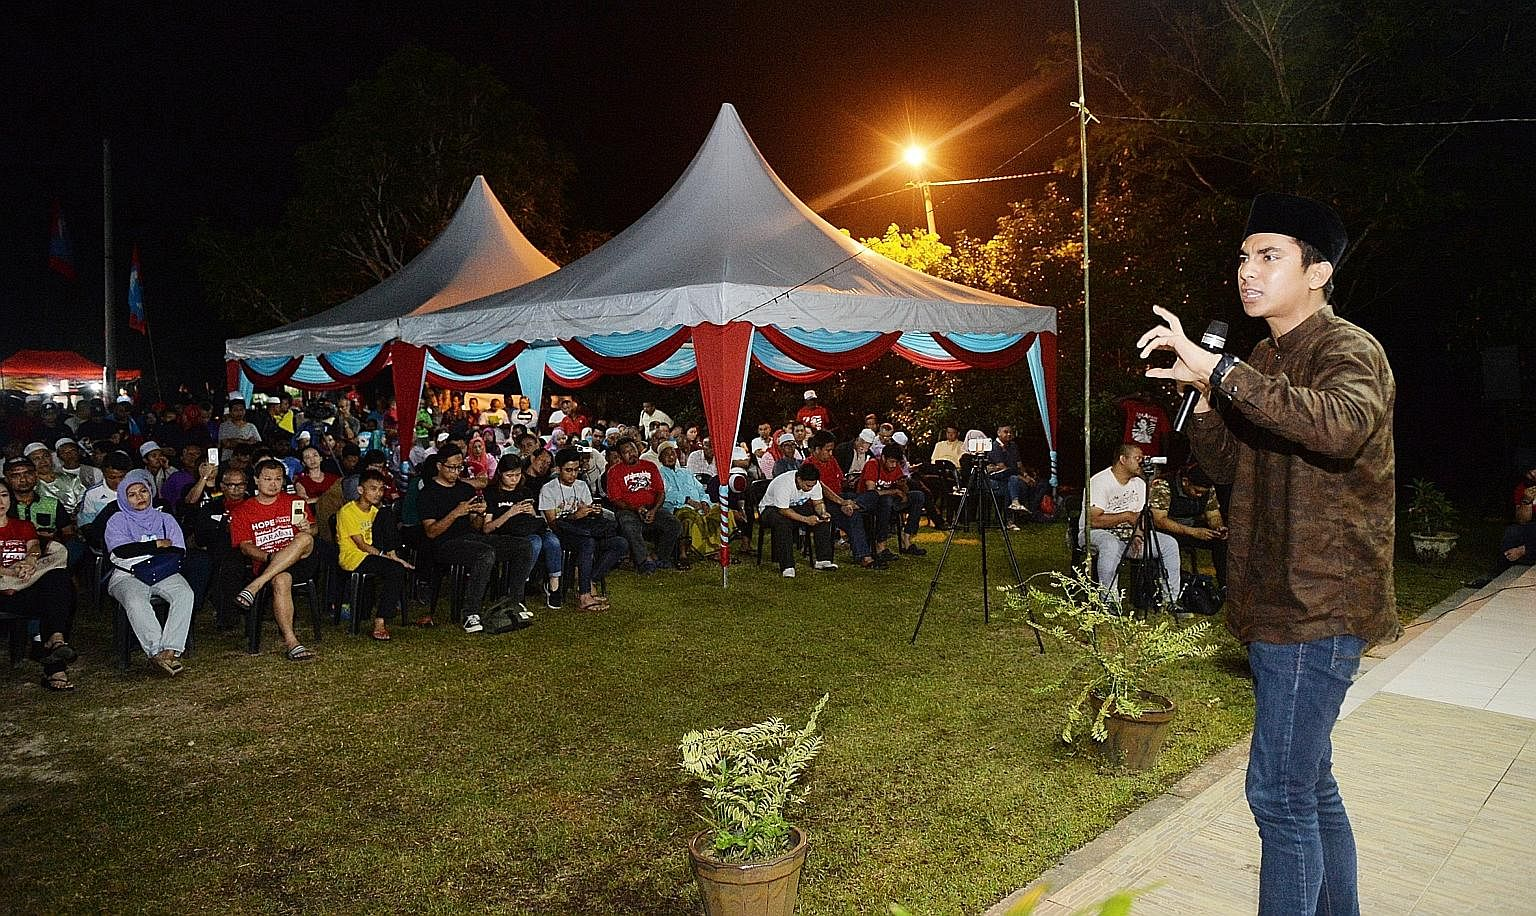 Mr Syed Saddiq Syed Abdul Rahman, 25, who is contesting in the Muar parliamentary ward, speaking at a Pakatan Harapan rally last night in the Johor town. PH candidates say they are confident of a significant shift in Malay support in their fav